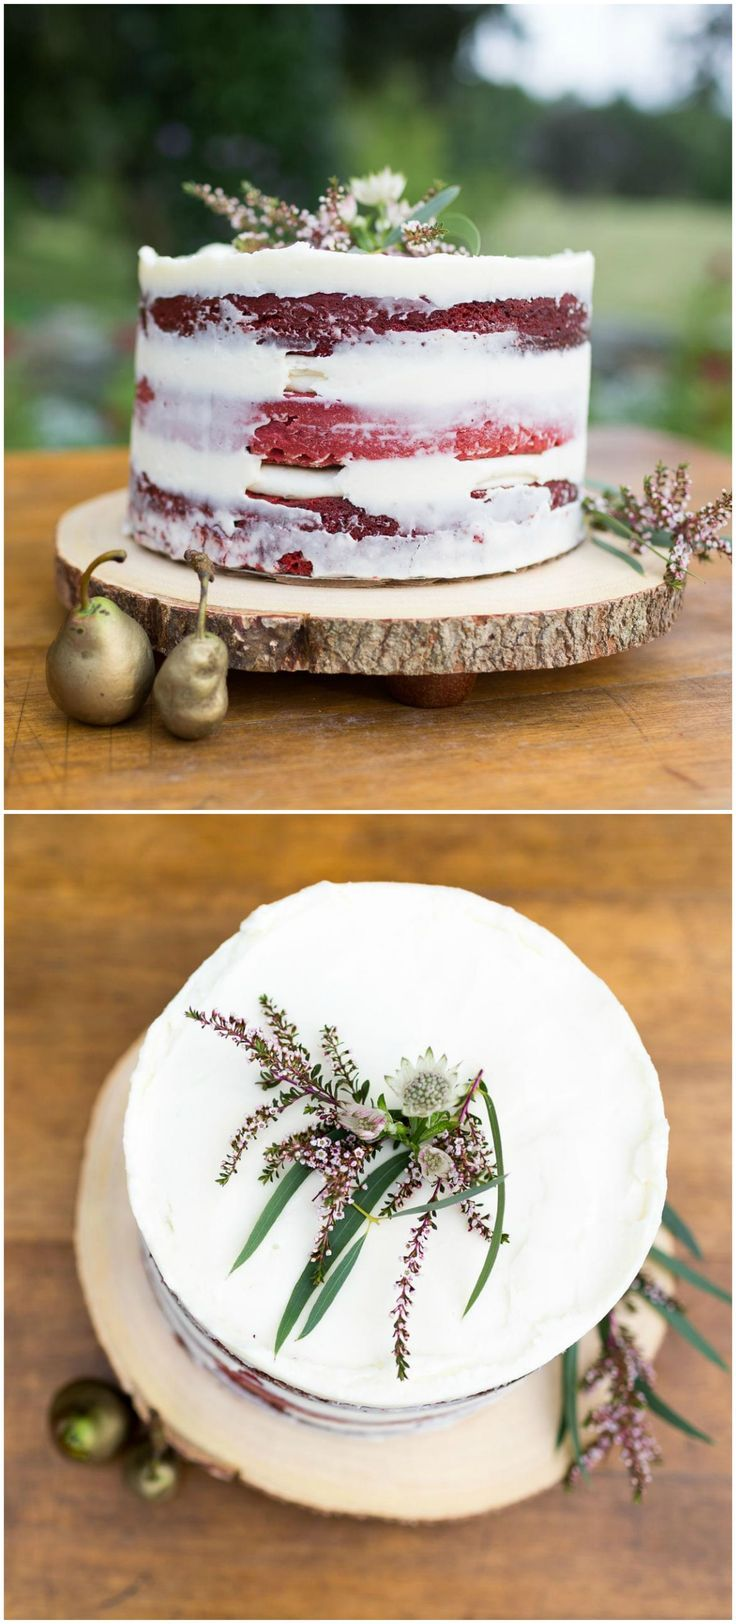 Red velvet naked wedding cake with cream cheese frosting and gold-dipped pears   A Fall Wedding Cake Idea   Johanna Kitzman Photography